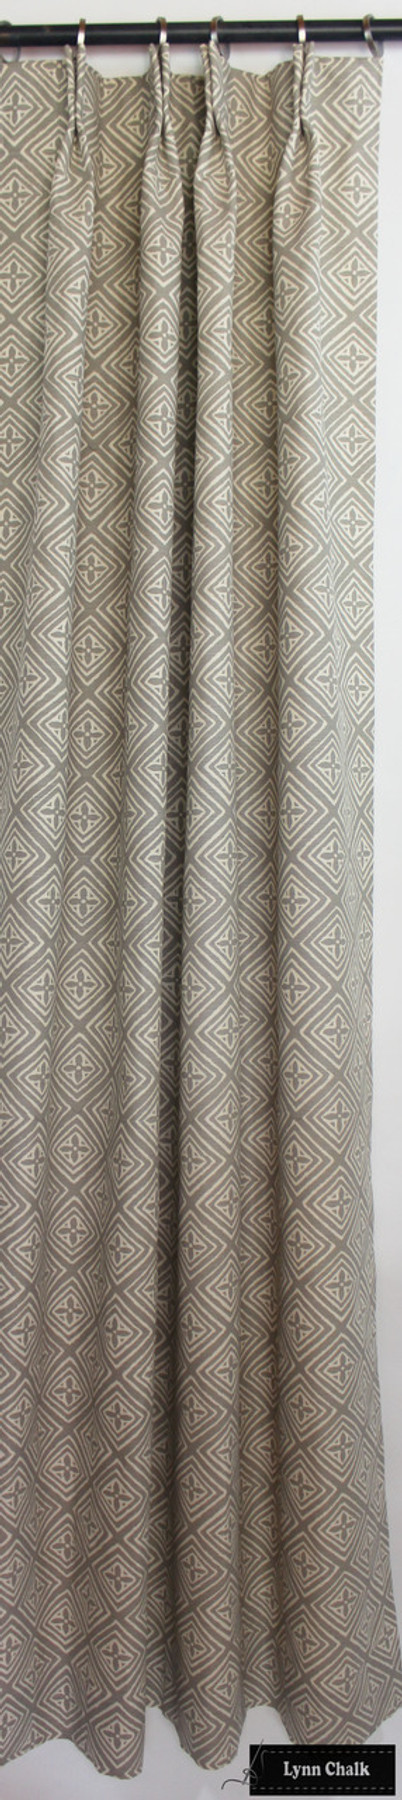 Quadrille China Seas Fiorentina Custom Drapes (shown in Pewter on Tint-Comes in many Colors)